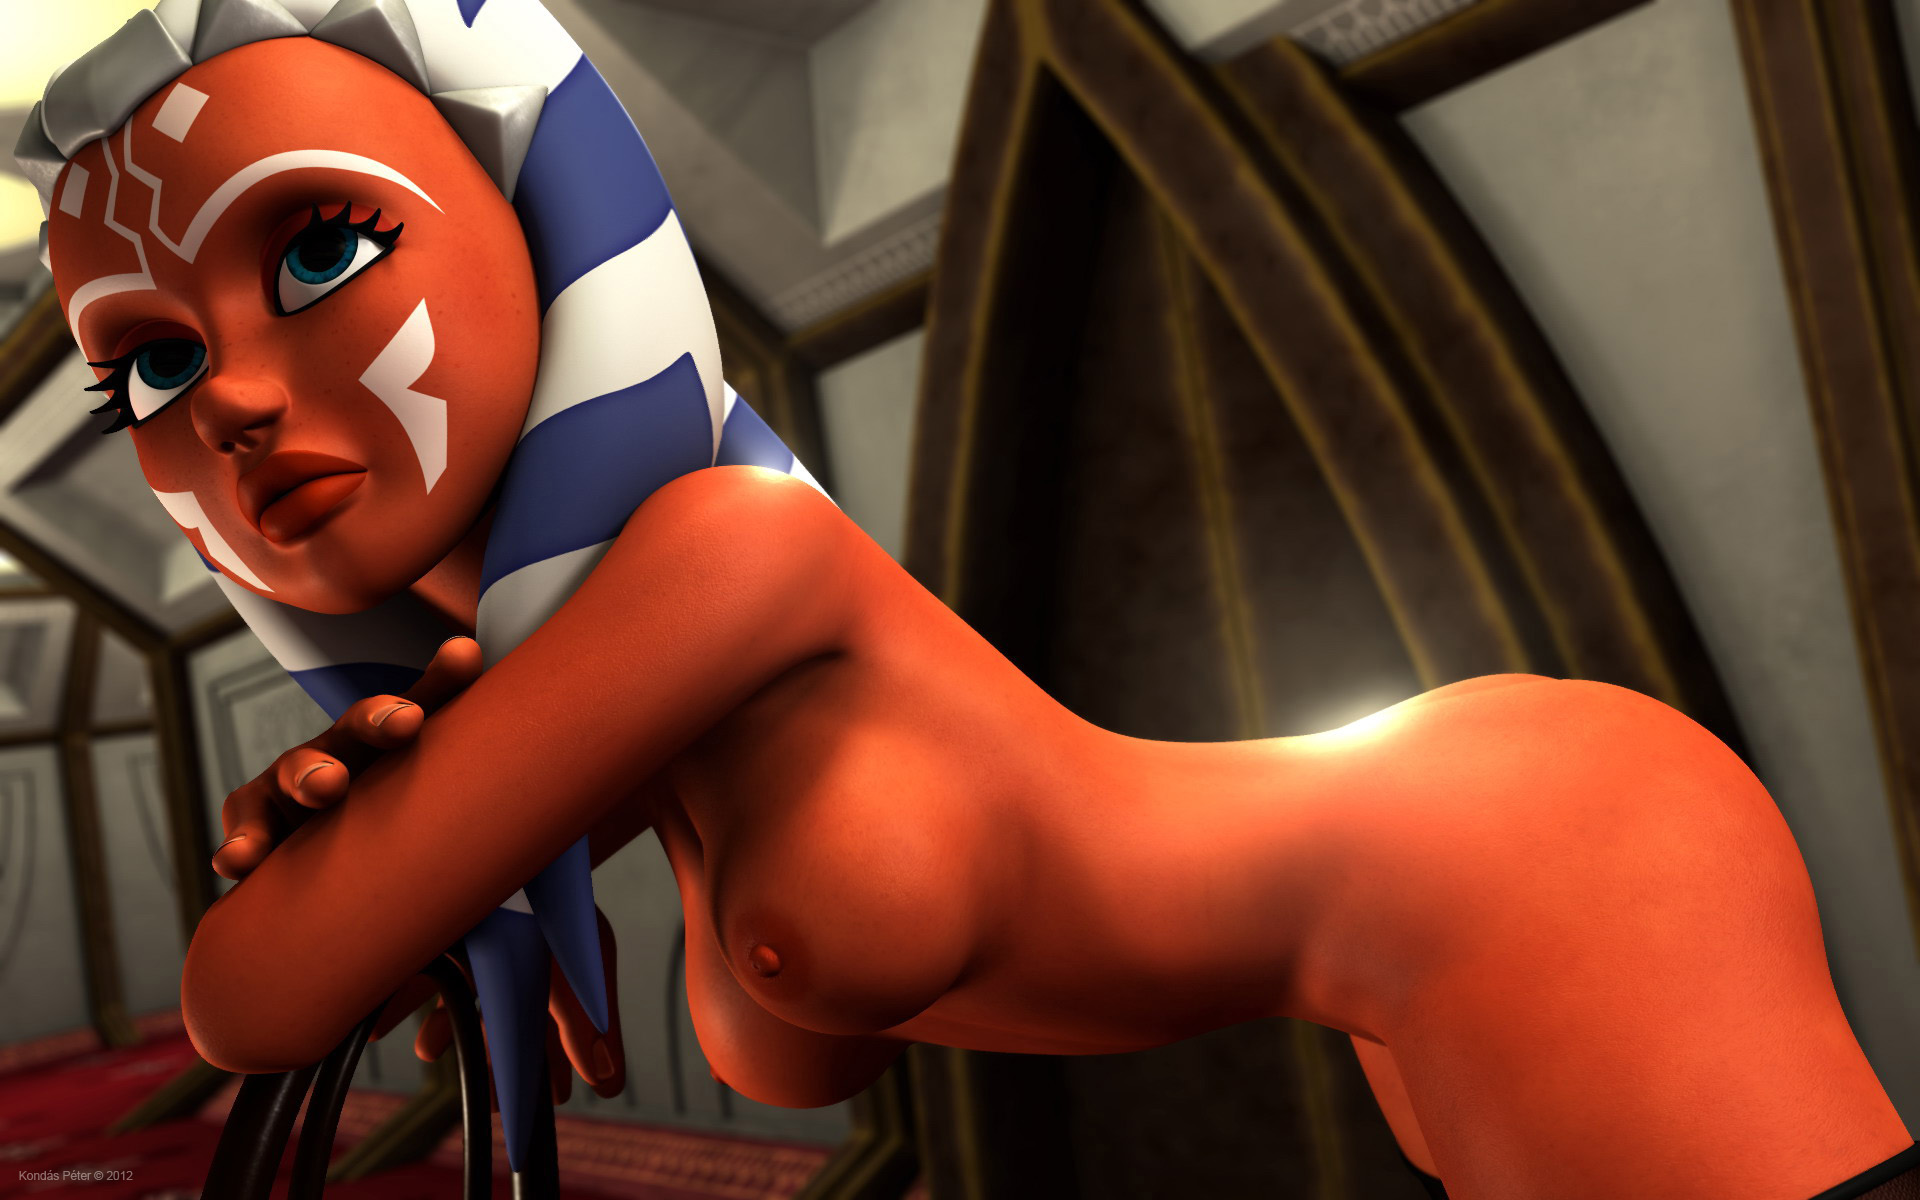 Ahsoka tano star wars naked naked tube